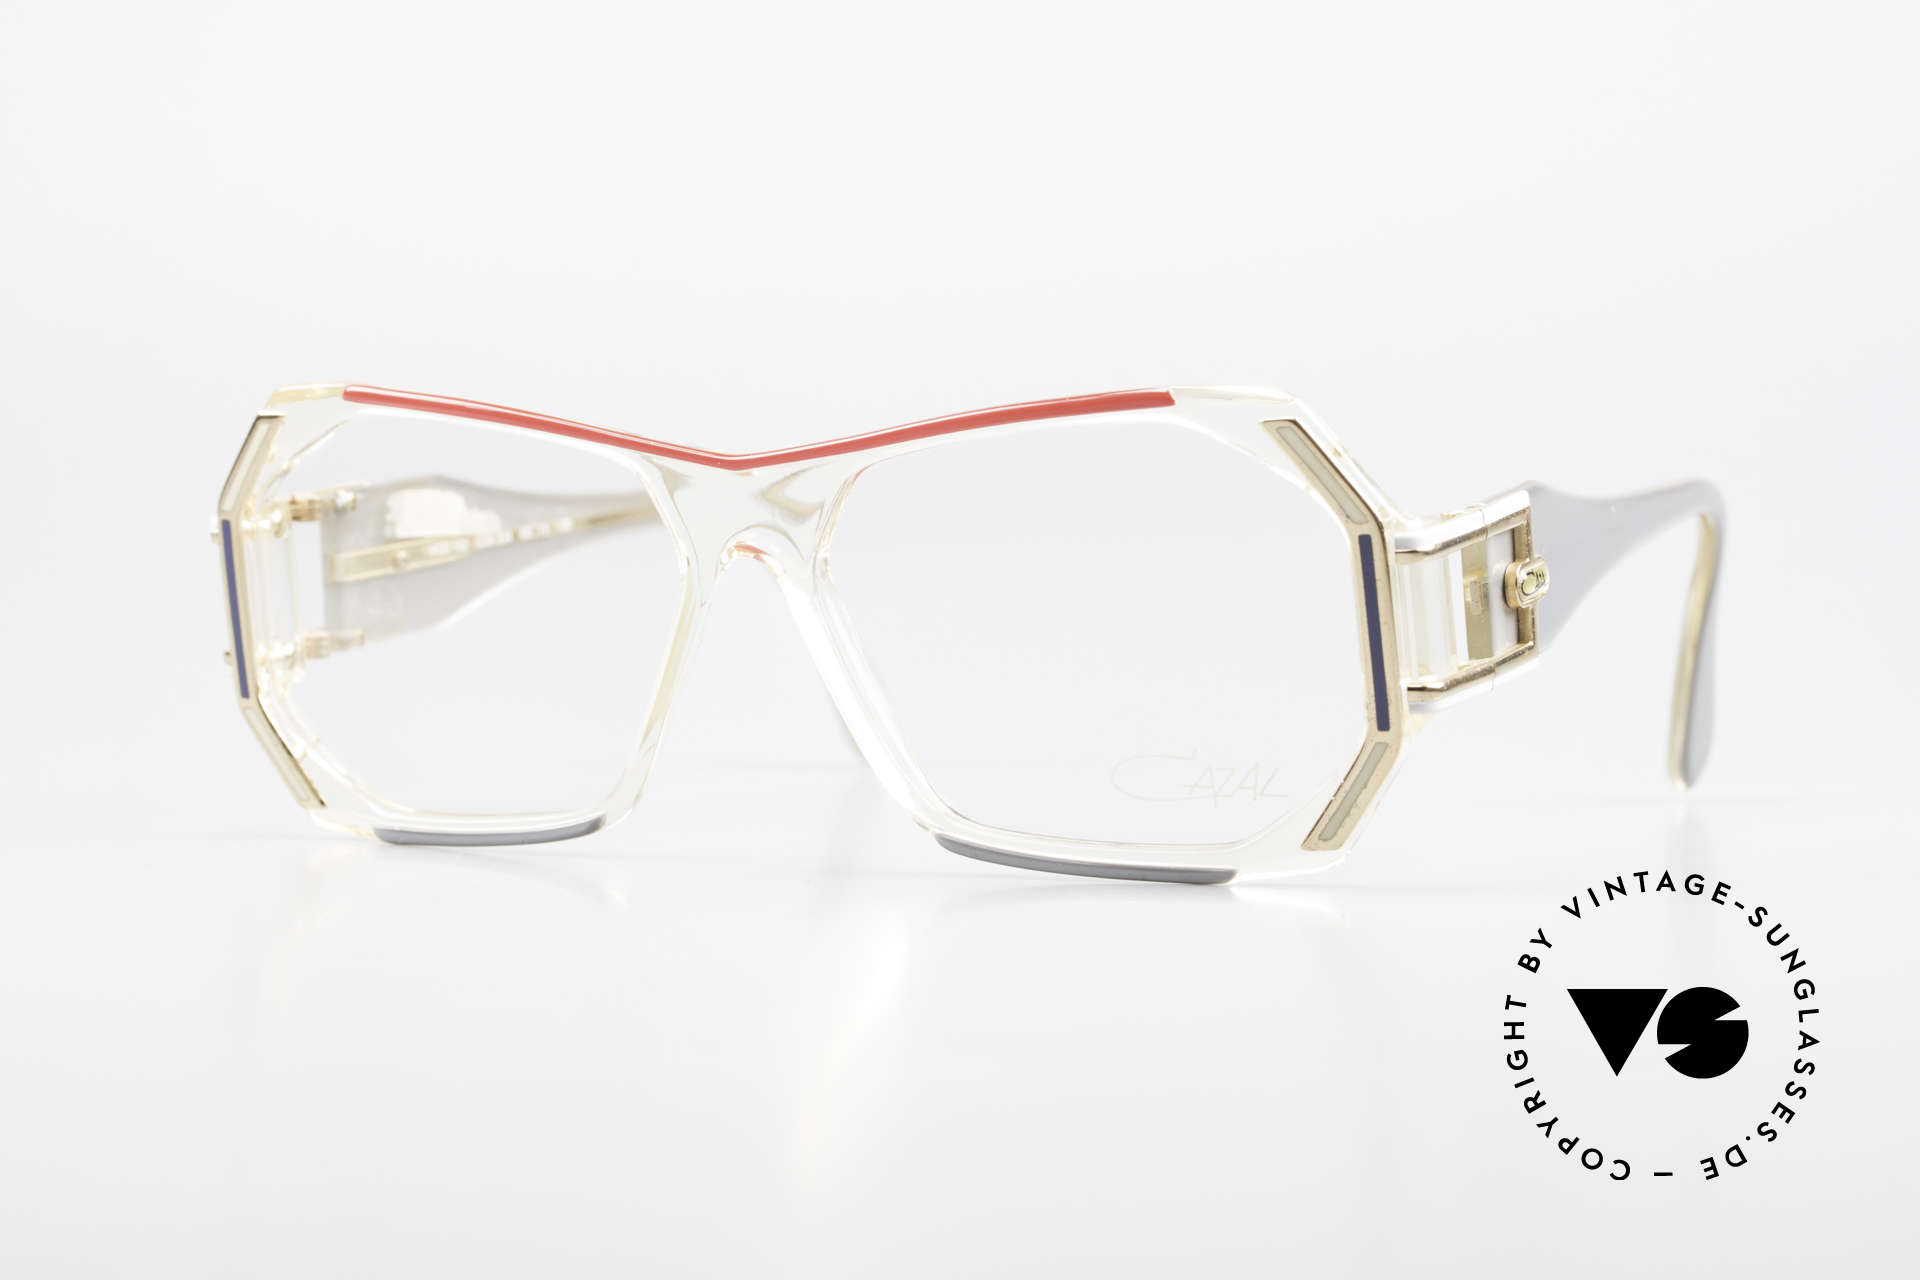 Cazal 182 80's HipHop Old School Frame, vintage 'Old School' Cazal eyeglass-frame from 1984, Made for Men and Women